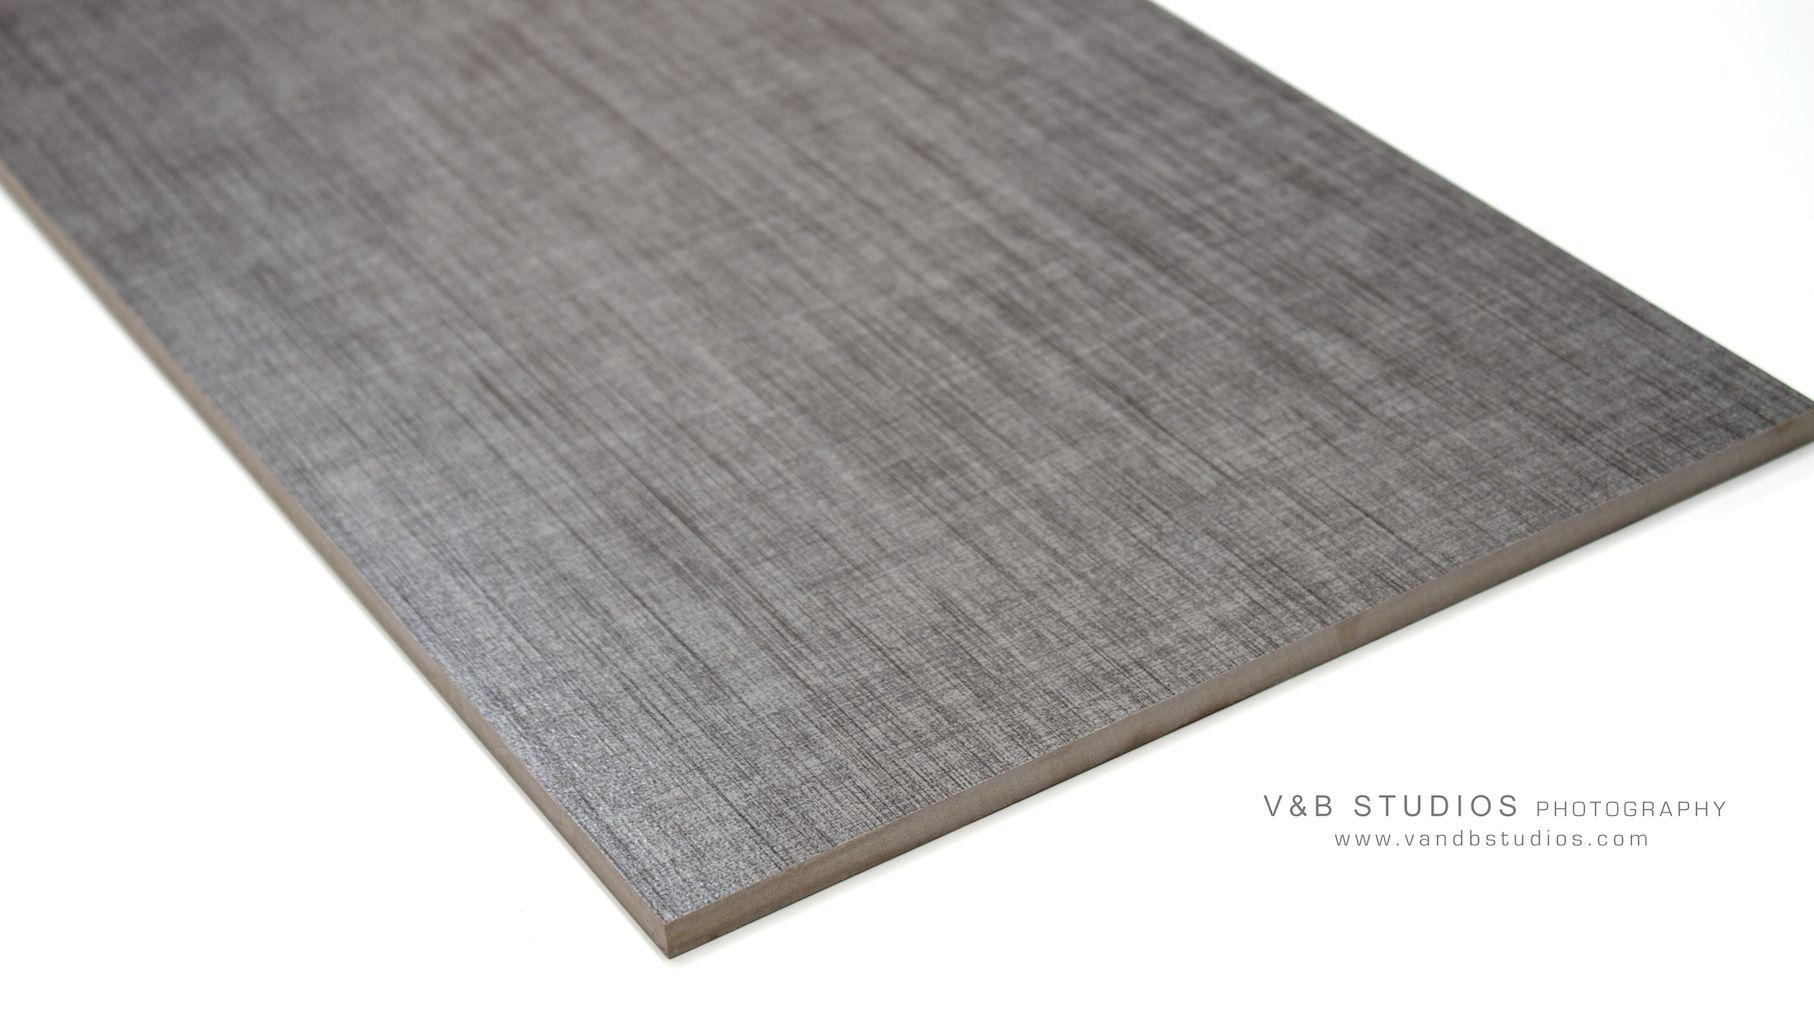 Linen pattern porcelain tile this is my dream tile for our linen pattern porcelain tile this is my dream tile for our bathrooms dailygadgetfo Image collections